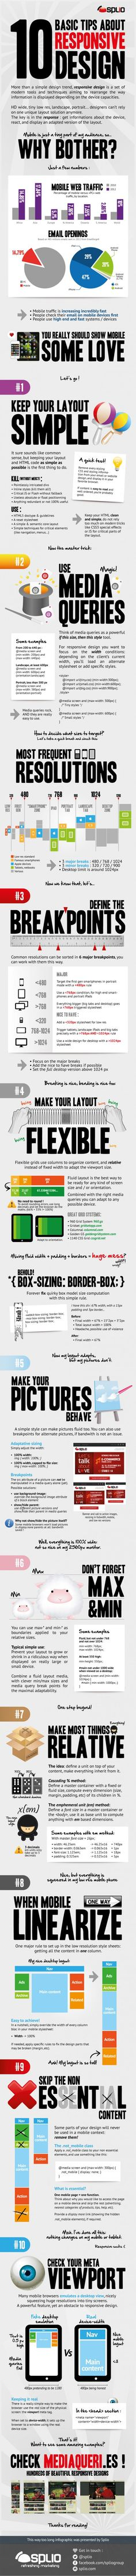 10_basic_tips_about_responsive_designsplioinfographic